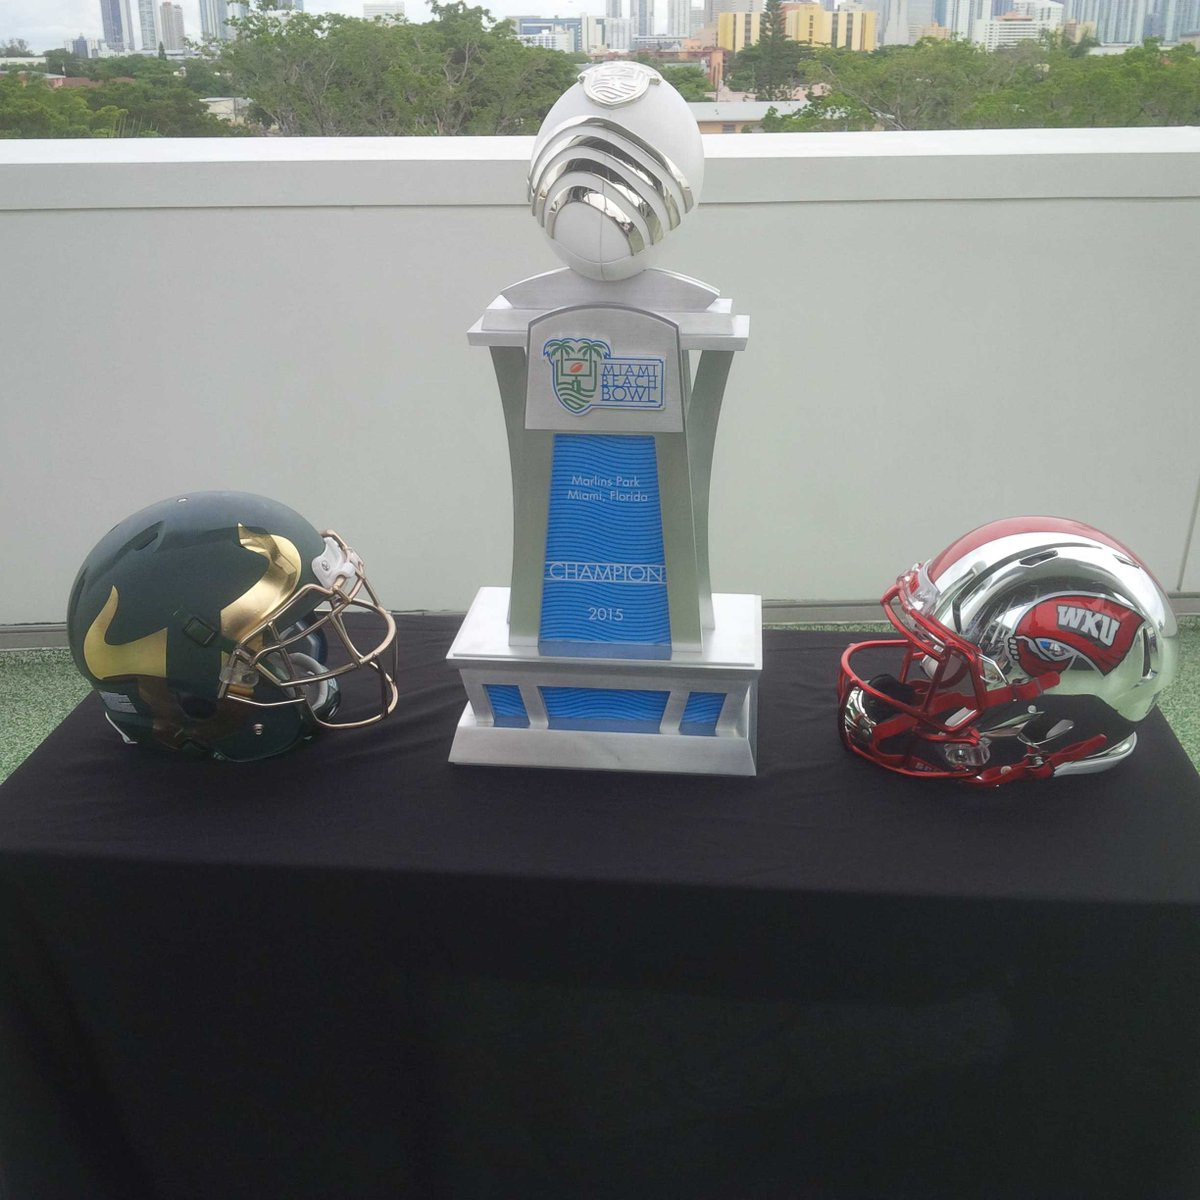 @MiamiBeachBowl trophy and helmets. #WKU #USF https://t.co/Df3uLxlPOr